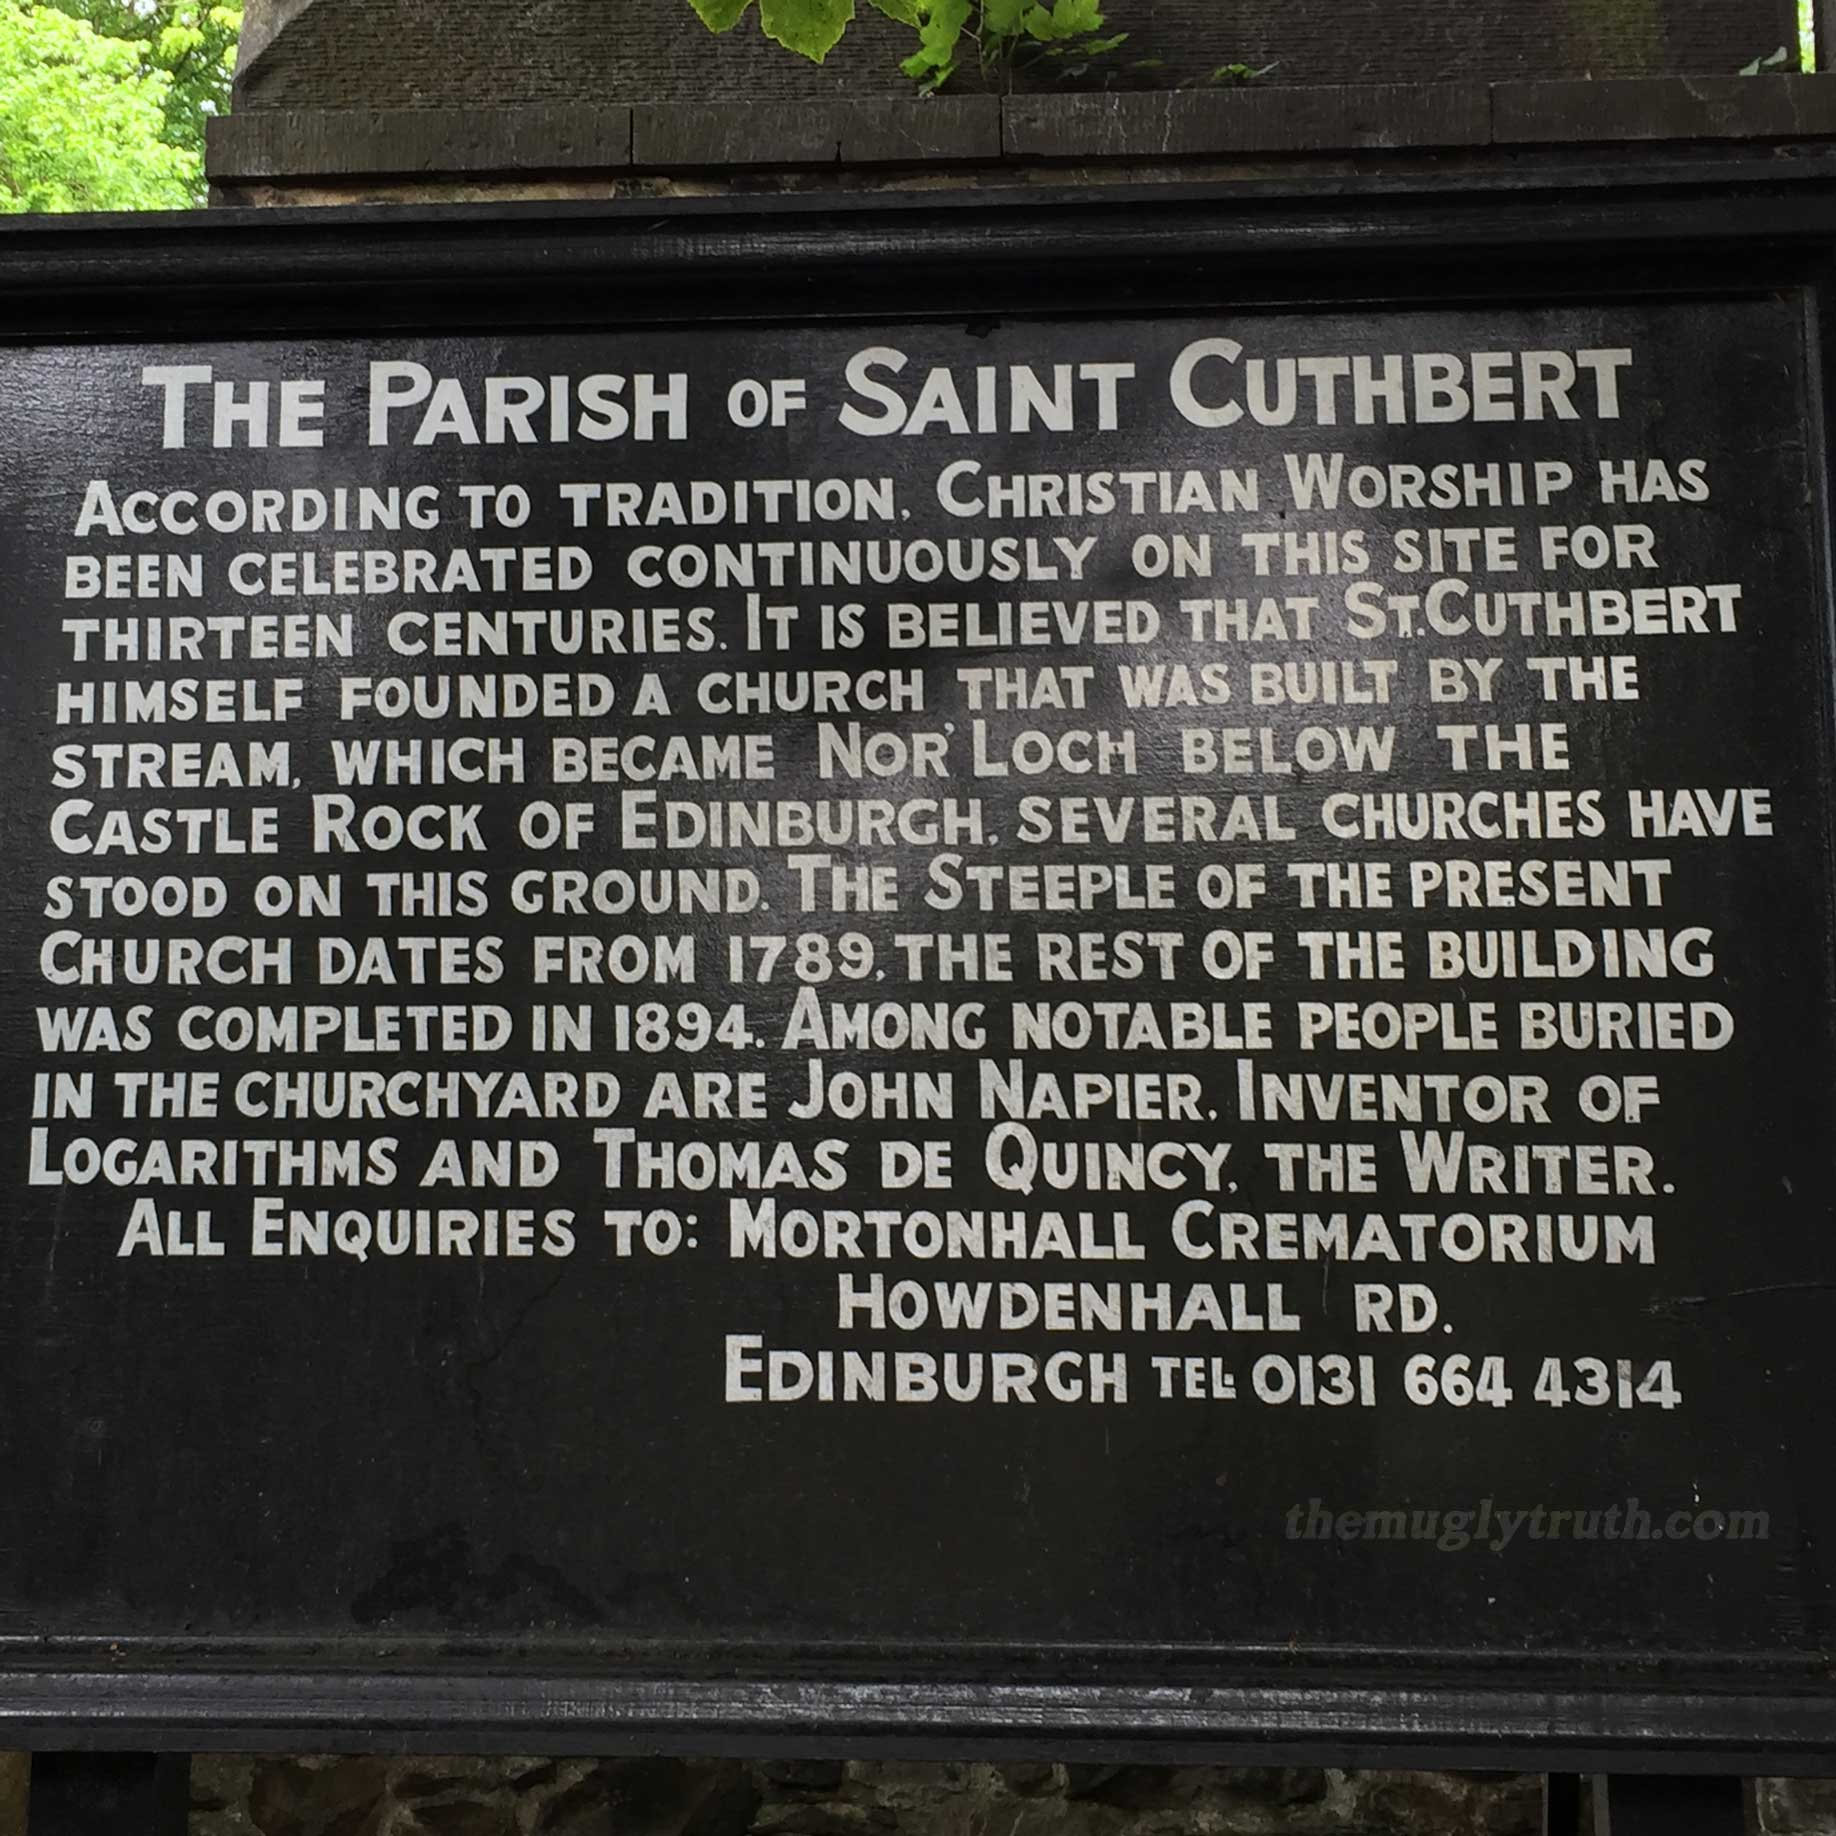 Saint Cuthbert Parish